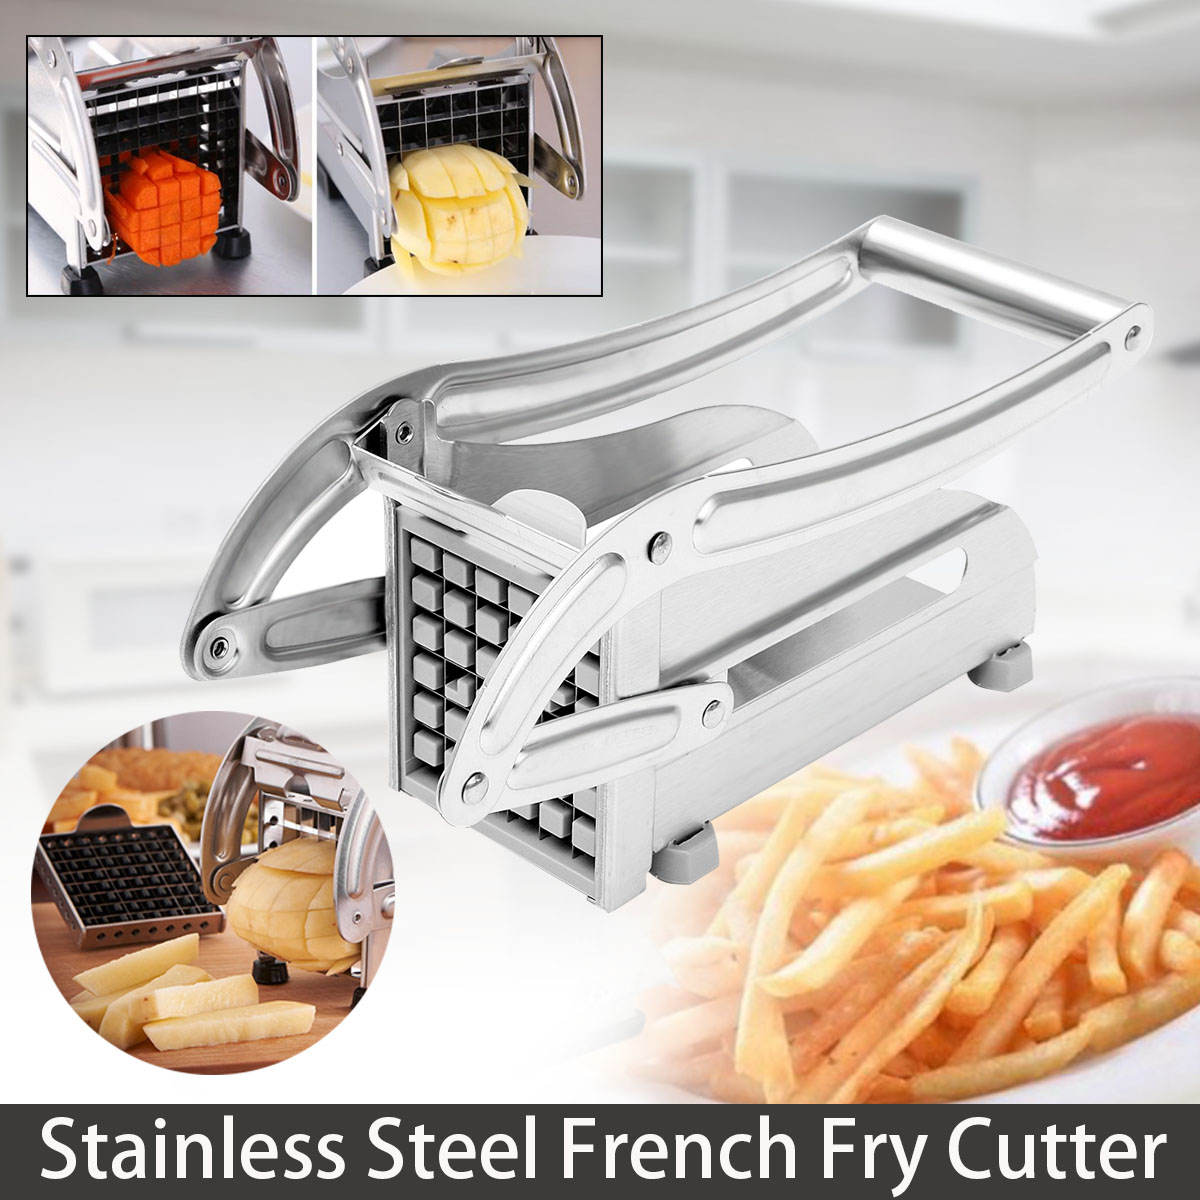 Stainless Steel French Fries Cutters Potato Chips Strip Cutting Machine Maker Slicer Chopper Dicer With 2 Blades Kitchen Gadgets